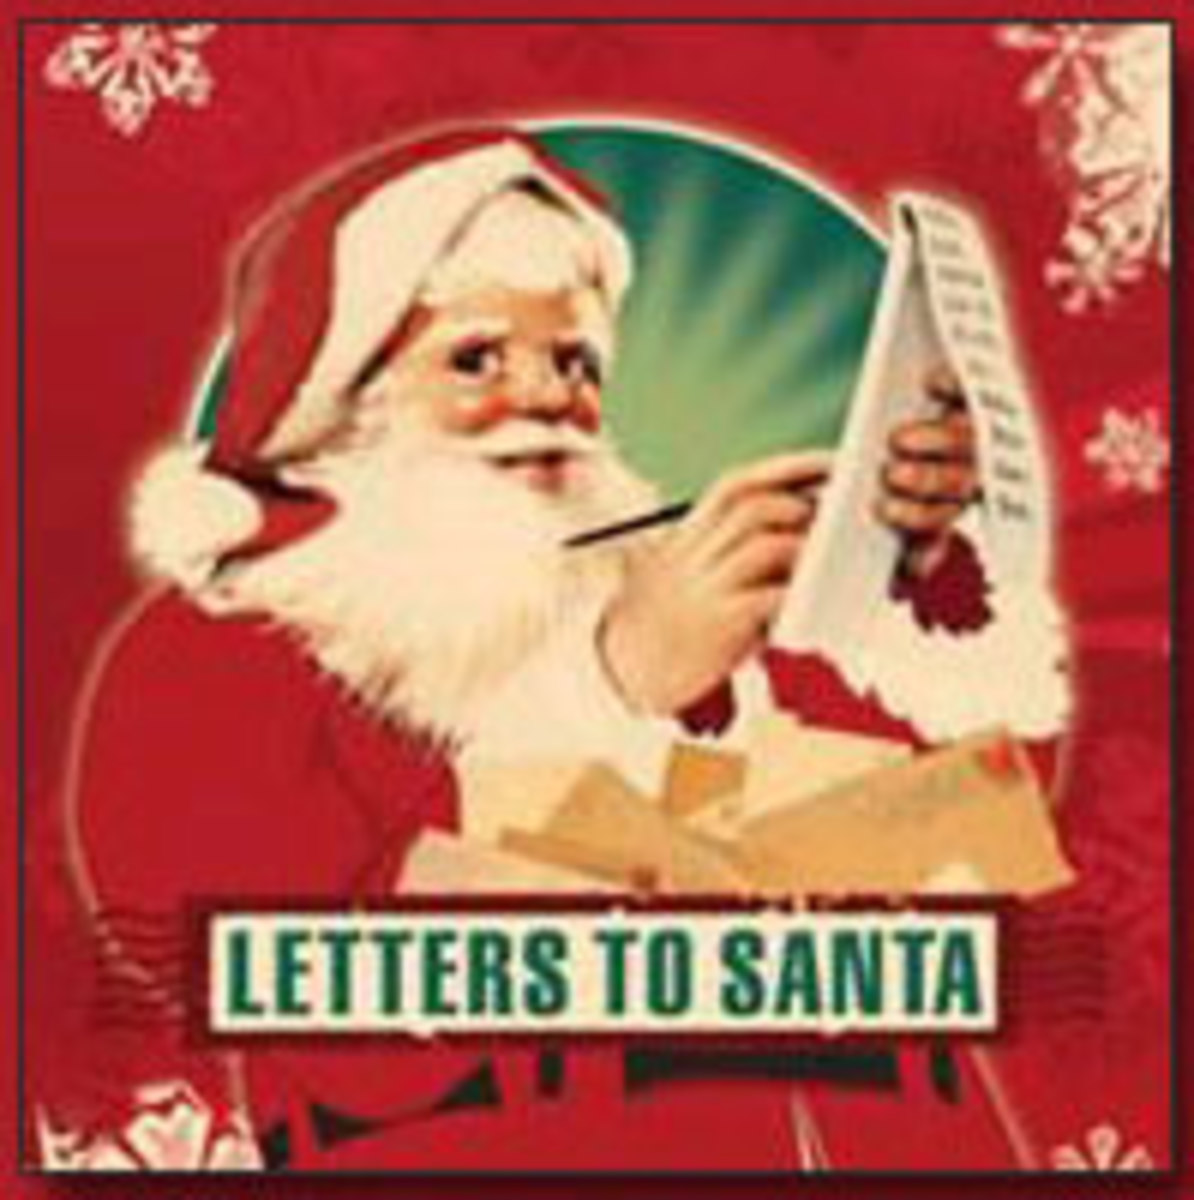 USPS Letters From Santa